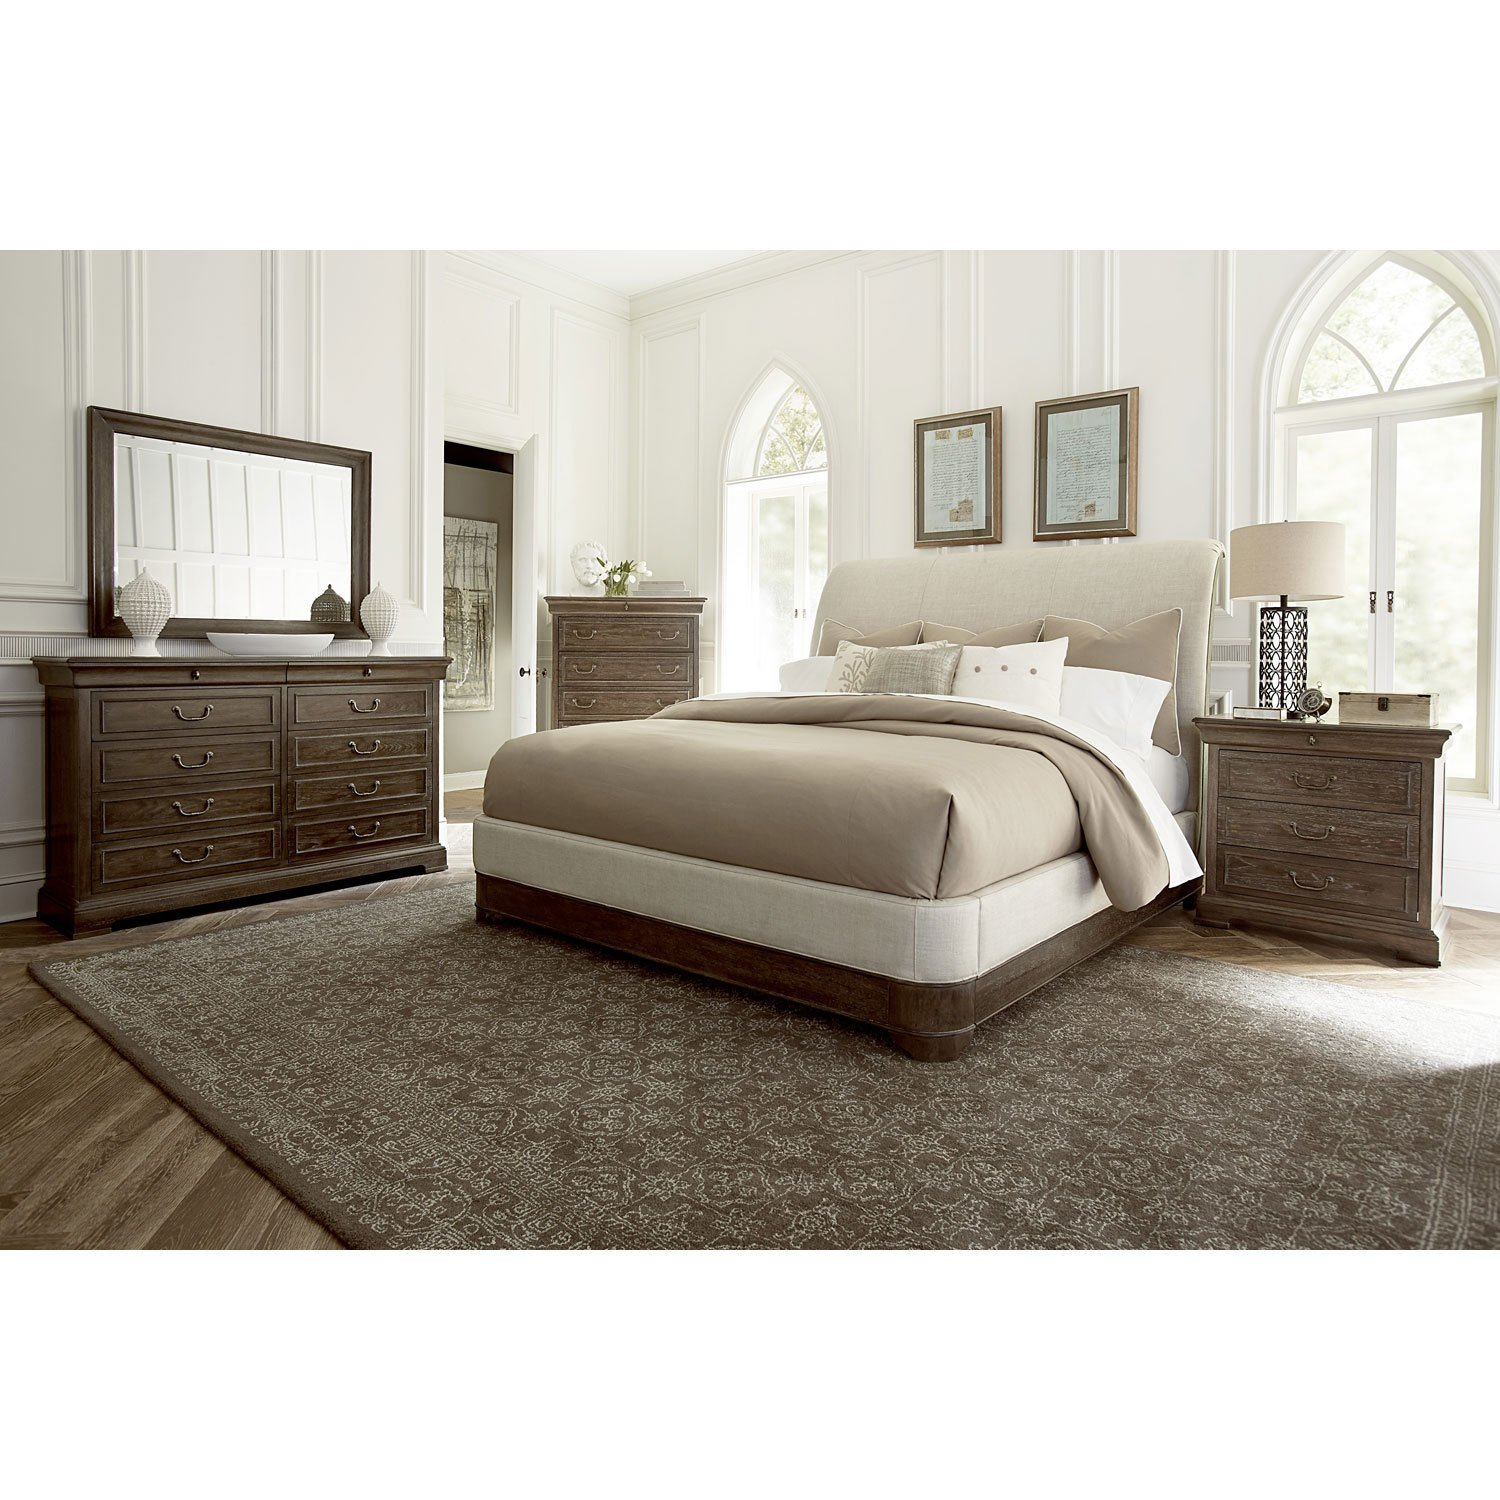 Best St Germain Eastern King Upholstered Platform Sleigh Bed A With Pictures